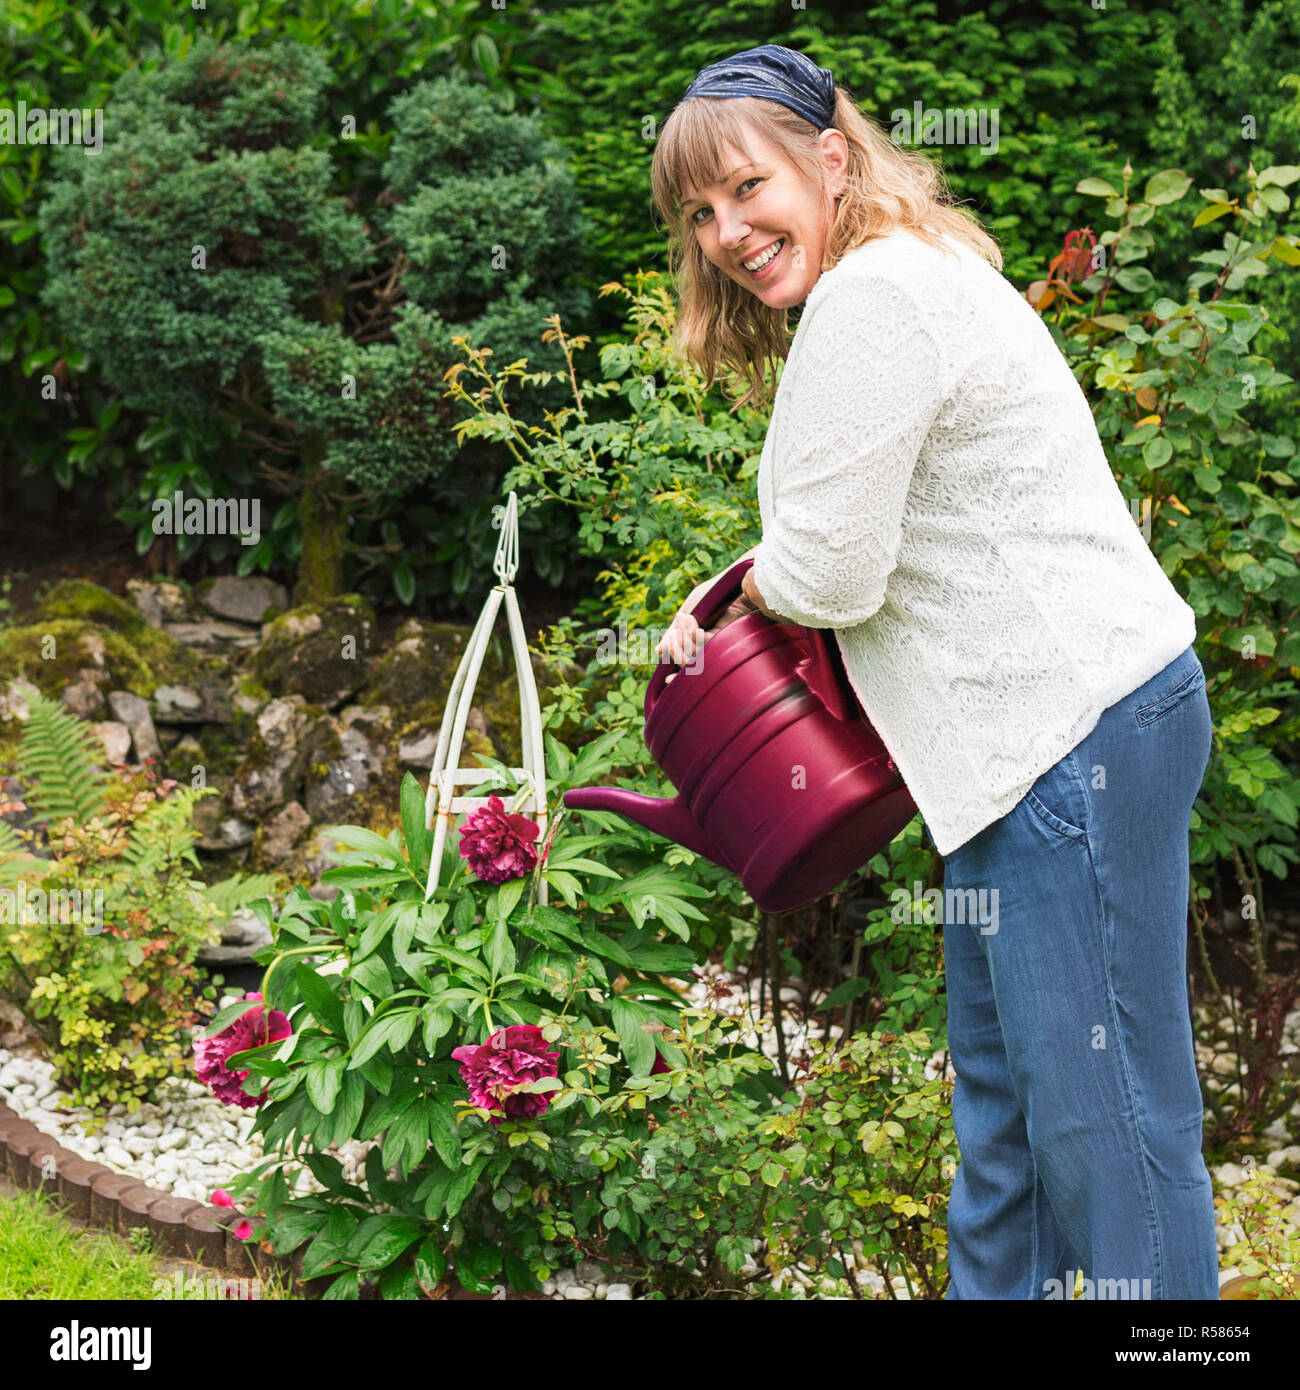 gardening nice woman pours peonies in the garden - Stock Image